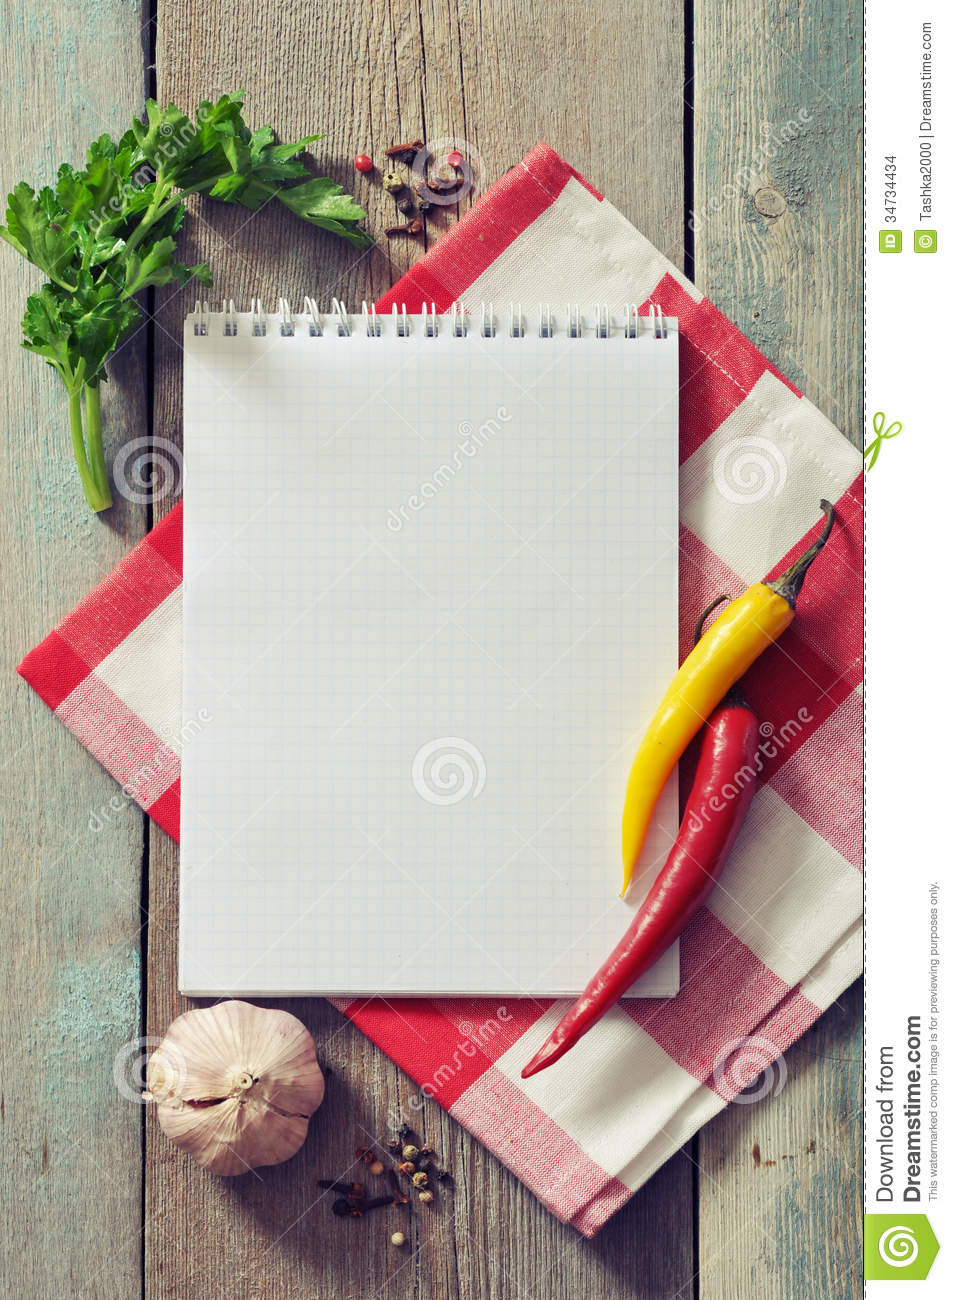 Blank Cookbook Cover Blank recipe book with kitchen